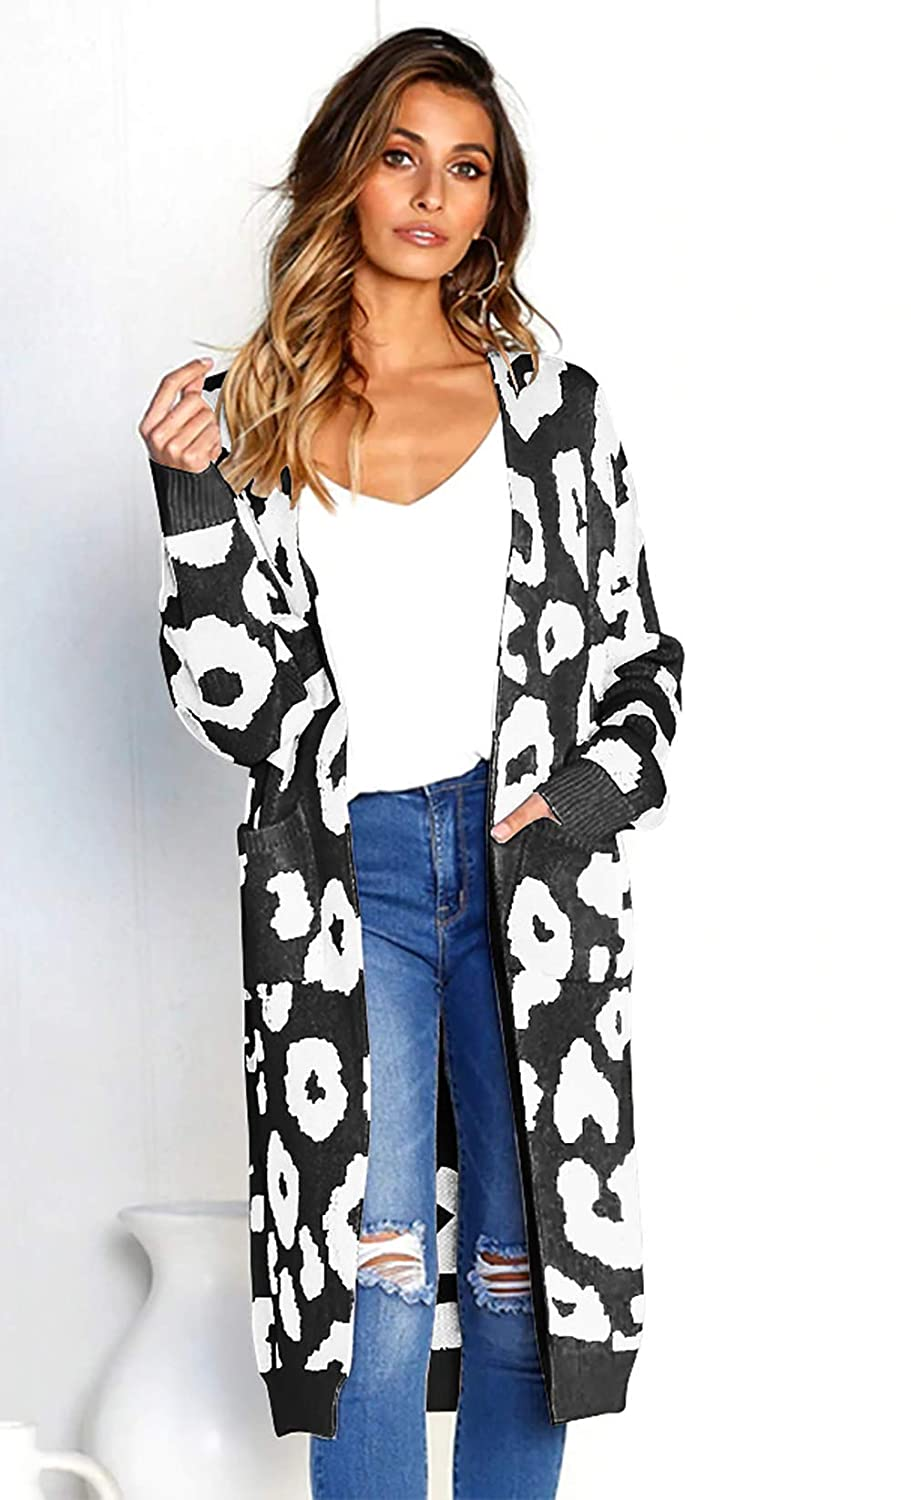 b3d34de8681 BTFBM Women Long Sleeve Open Front Leopard Knit Long Cardigan Casual Print  Knitted Maxi Sweater Coat Outwear with Pockets at Amazon Women s Clothing  store